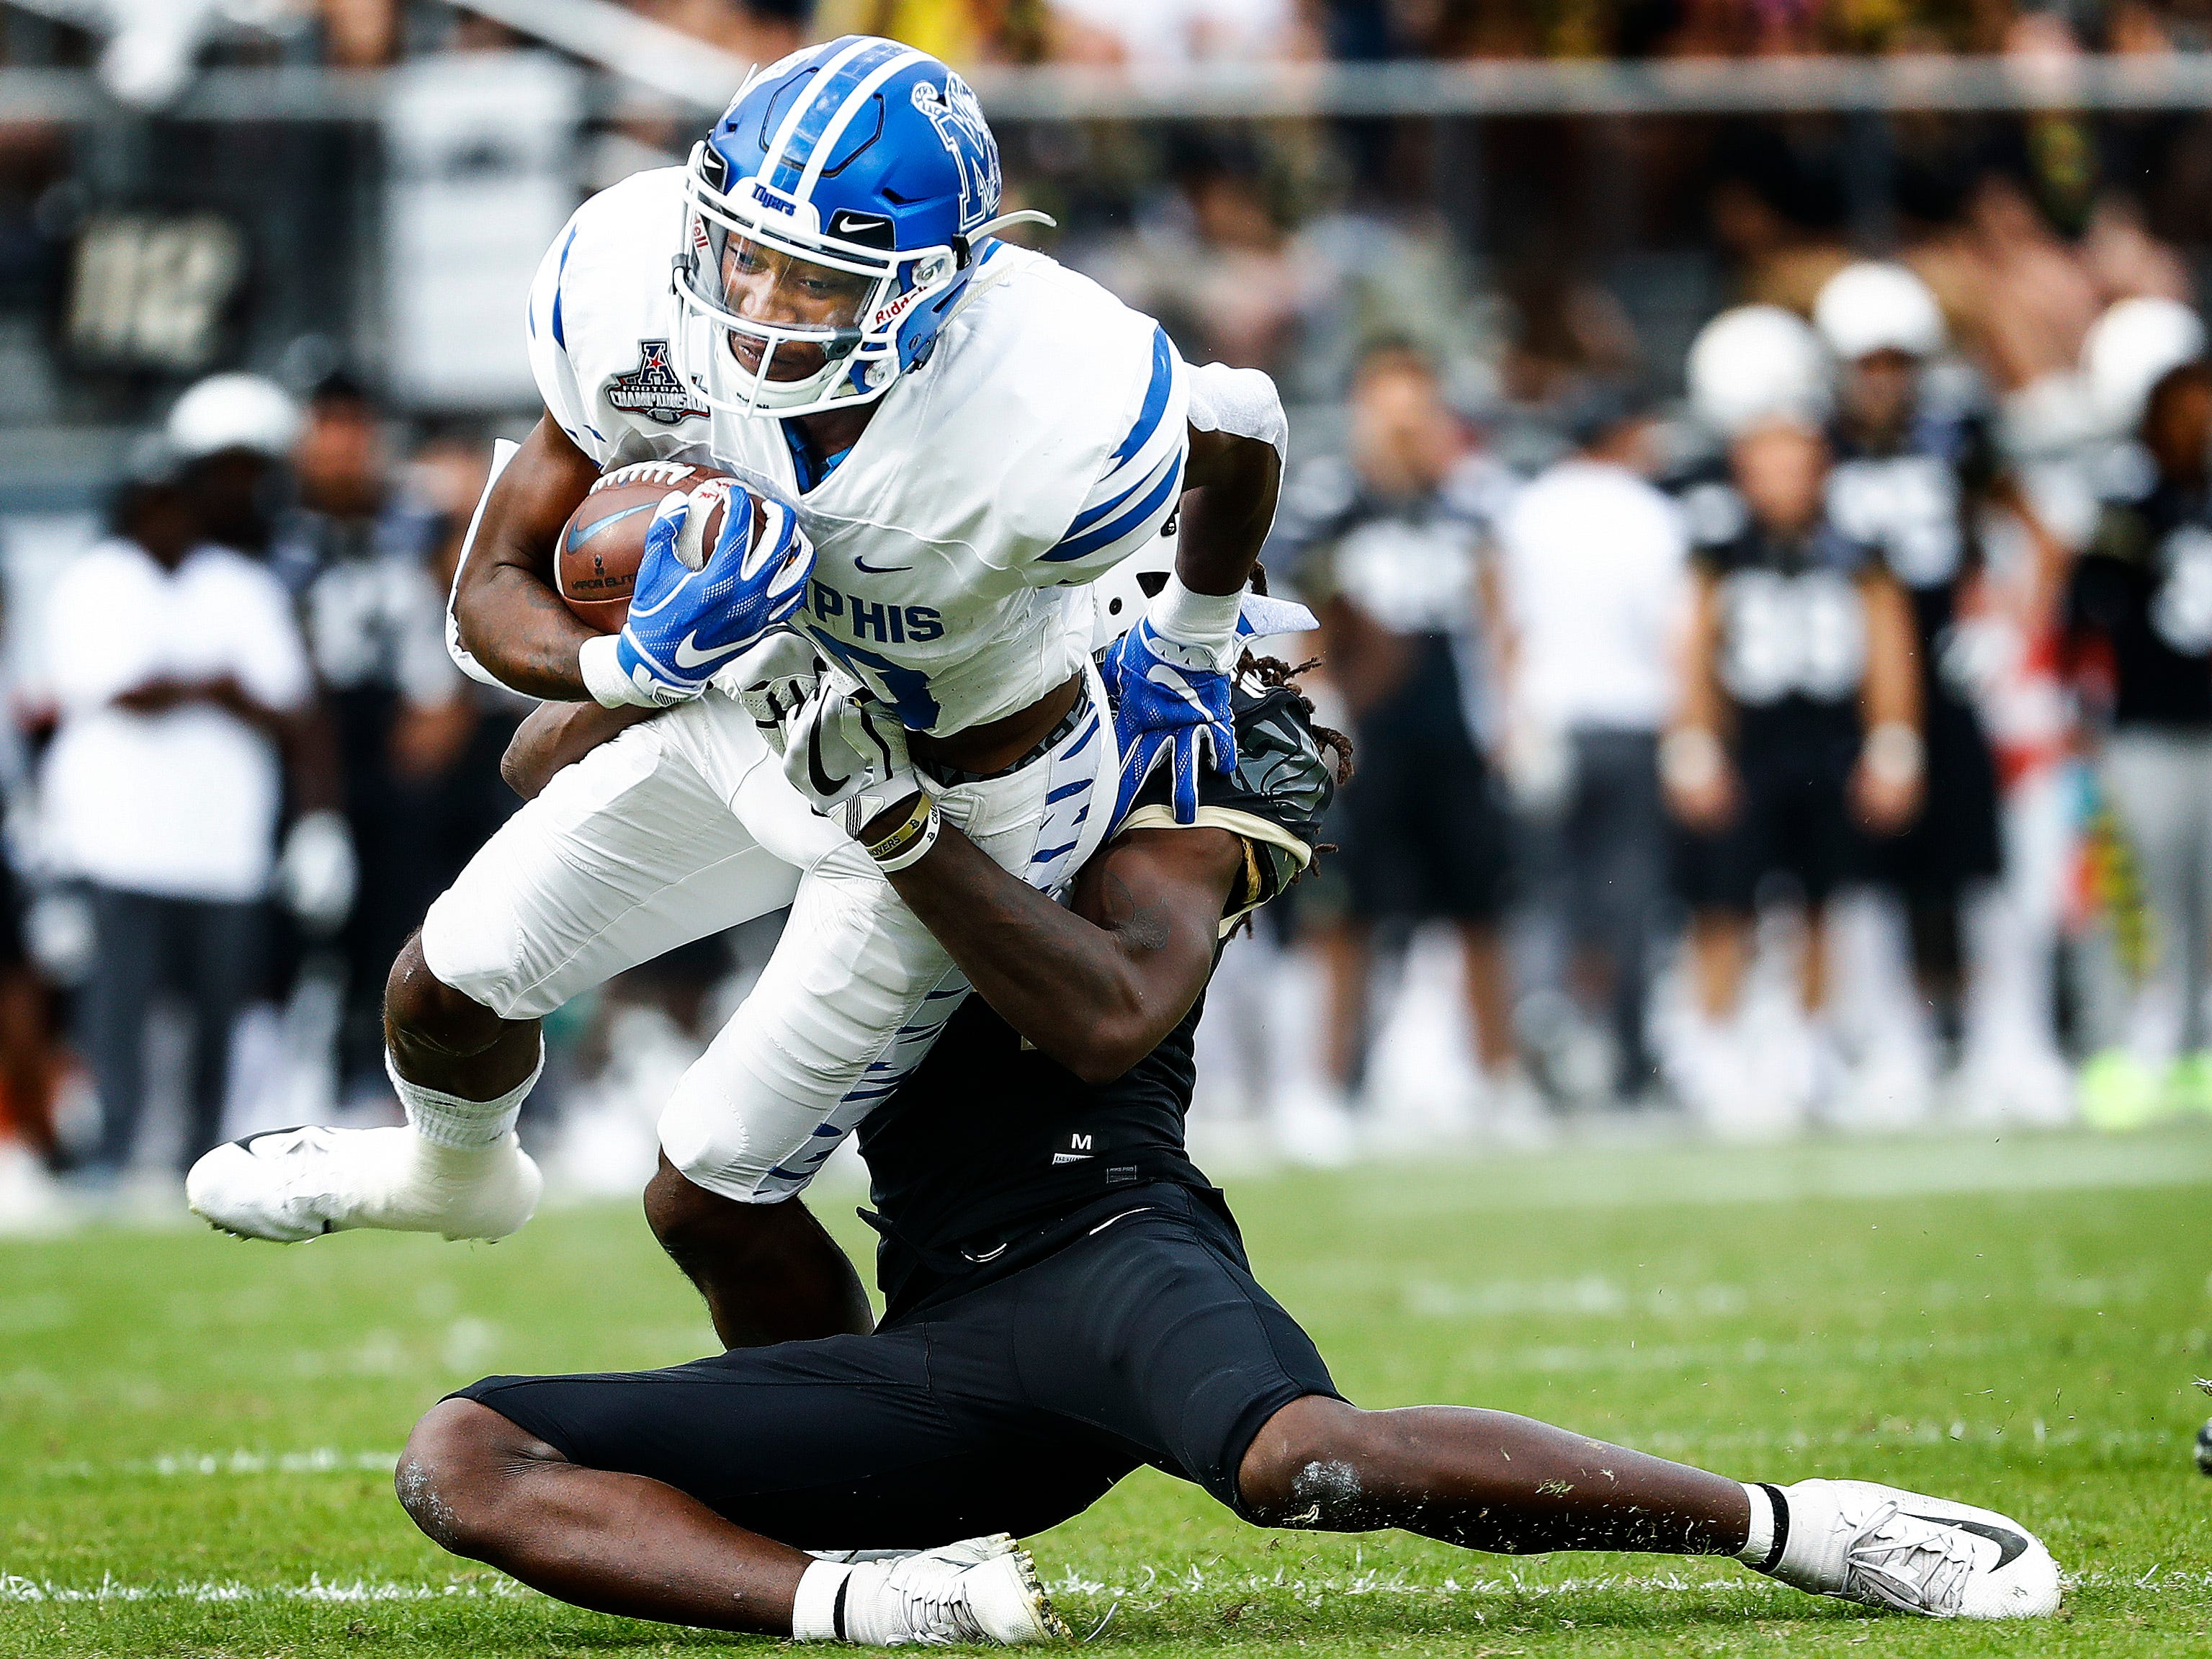 Memphis receiver Damonte Coxie (left) fights for positive yards against the UCF defense during action at the AAC Championship Football game Saturday, December 1, 2018 in Orlando.